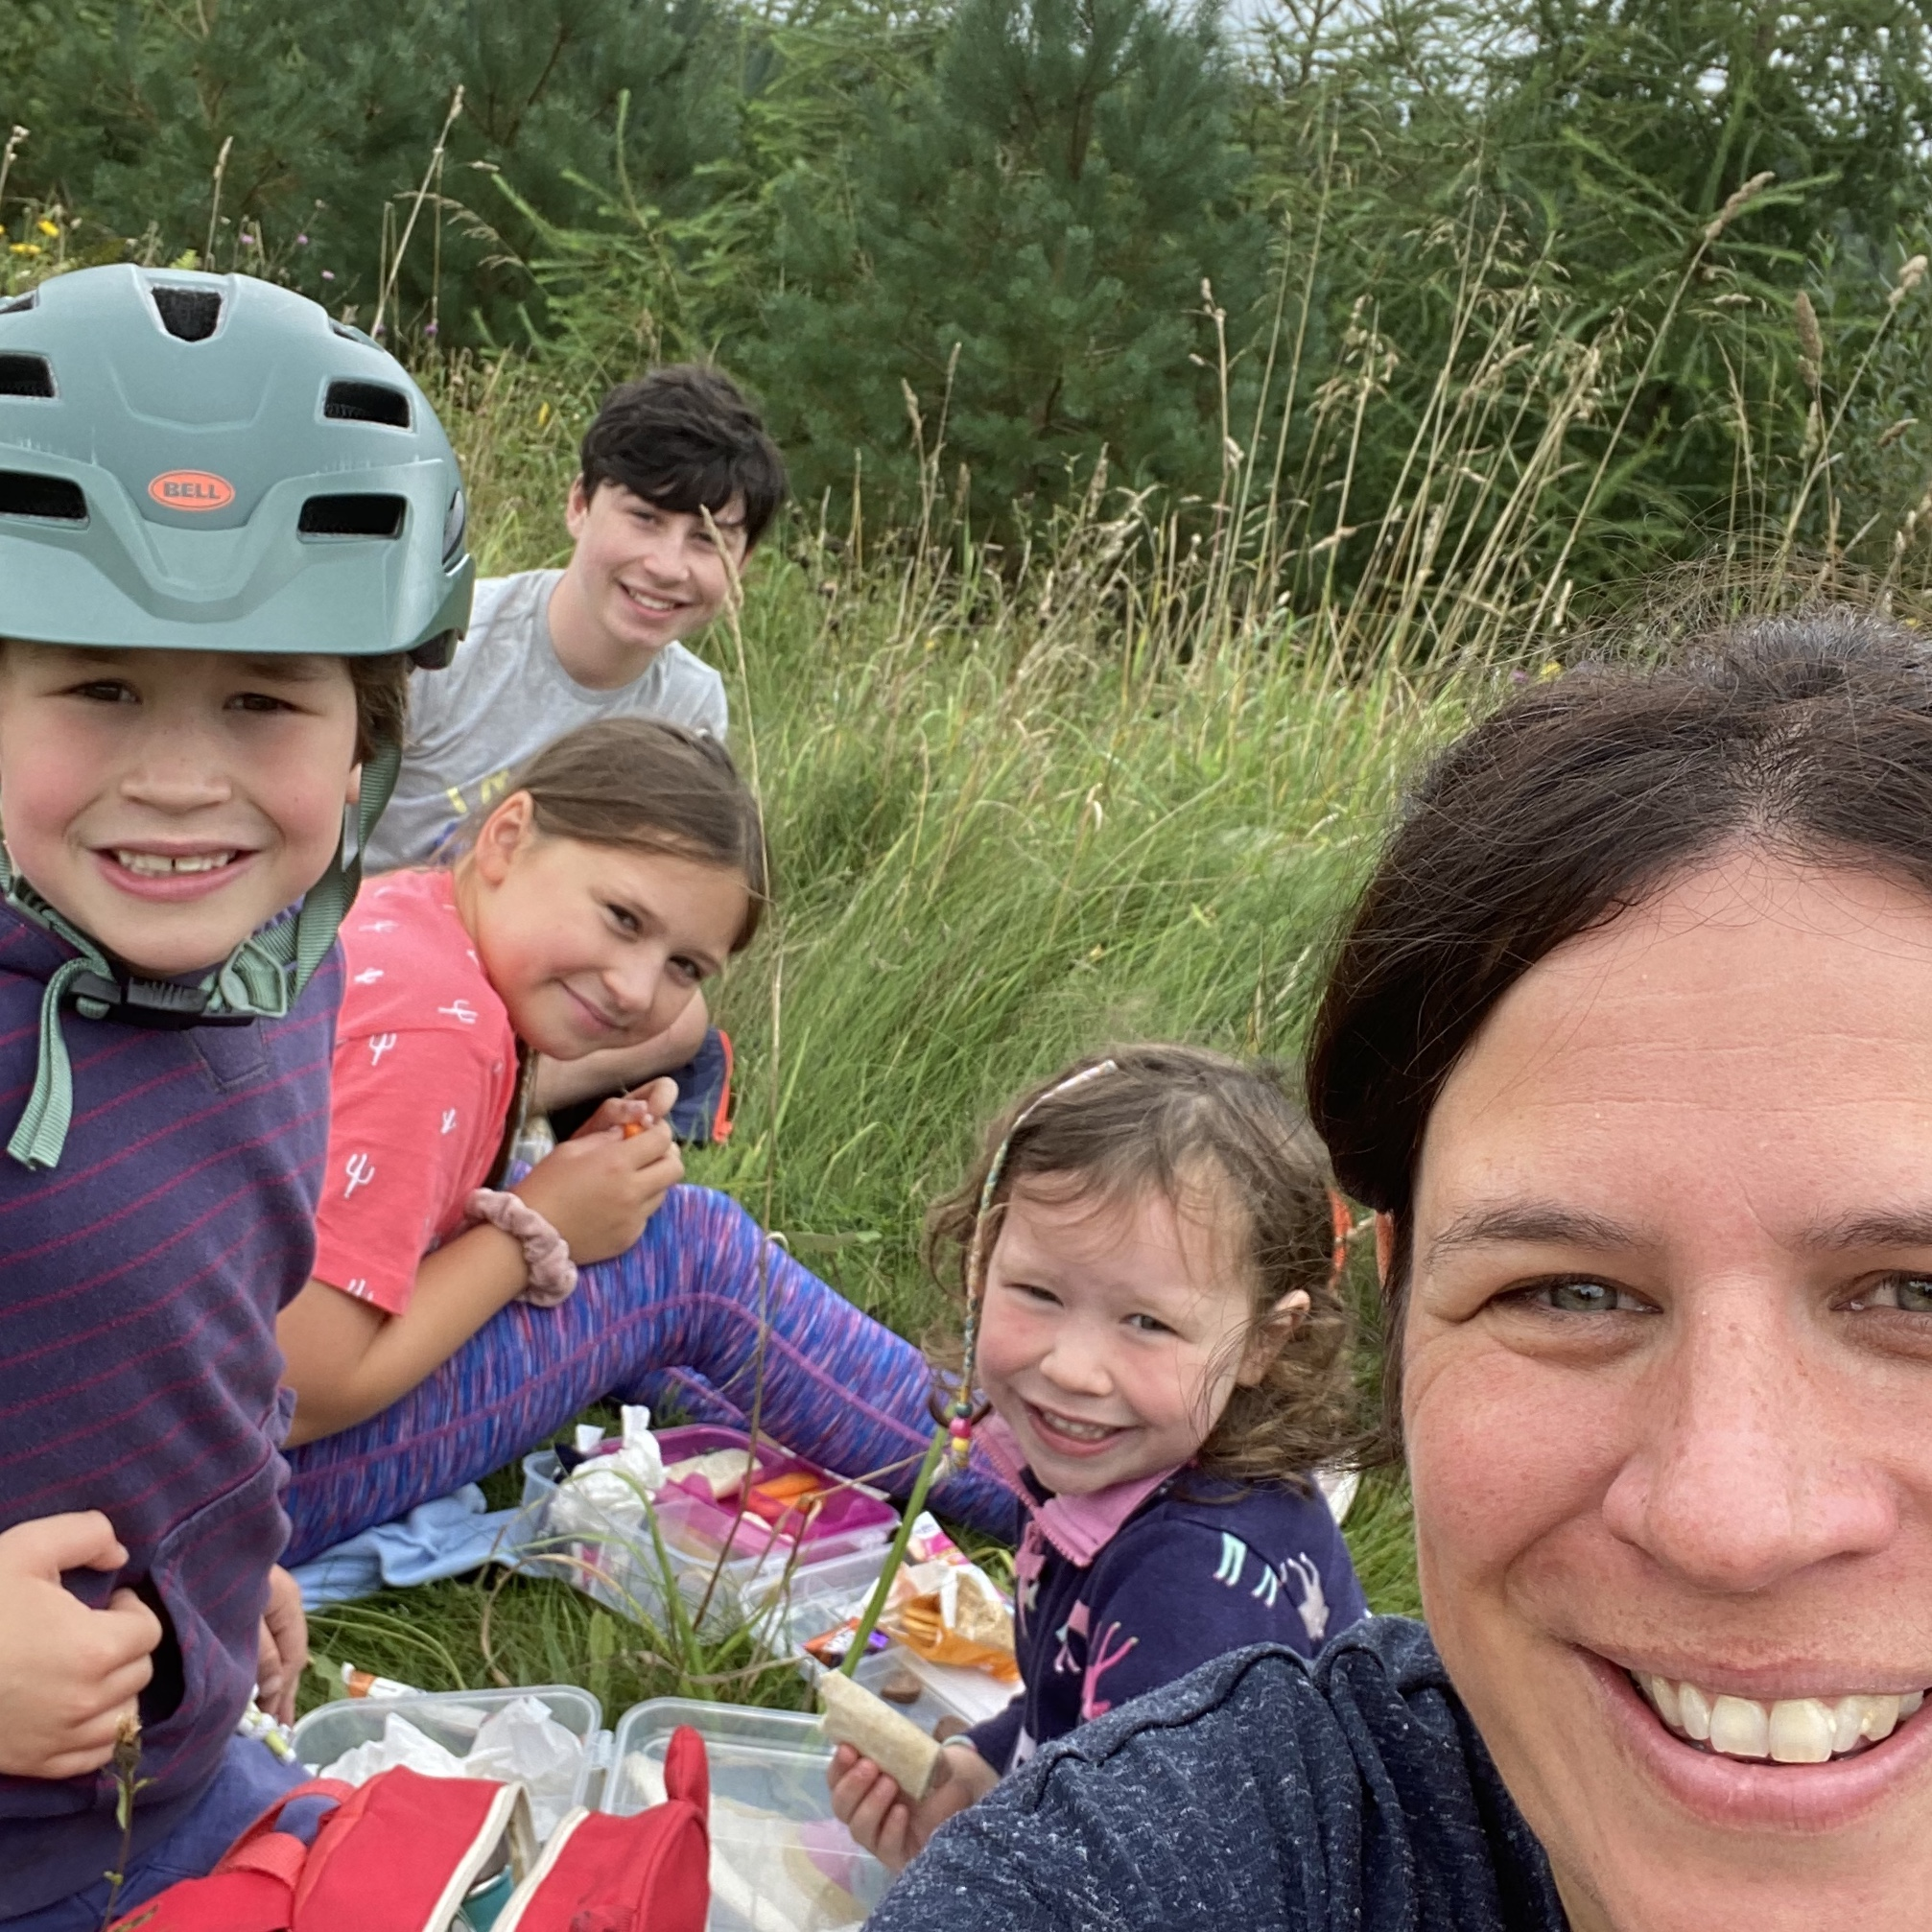 a mum and 4 children smiling after a cycle ride in Dalby forest